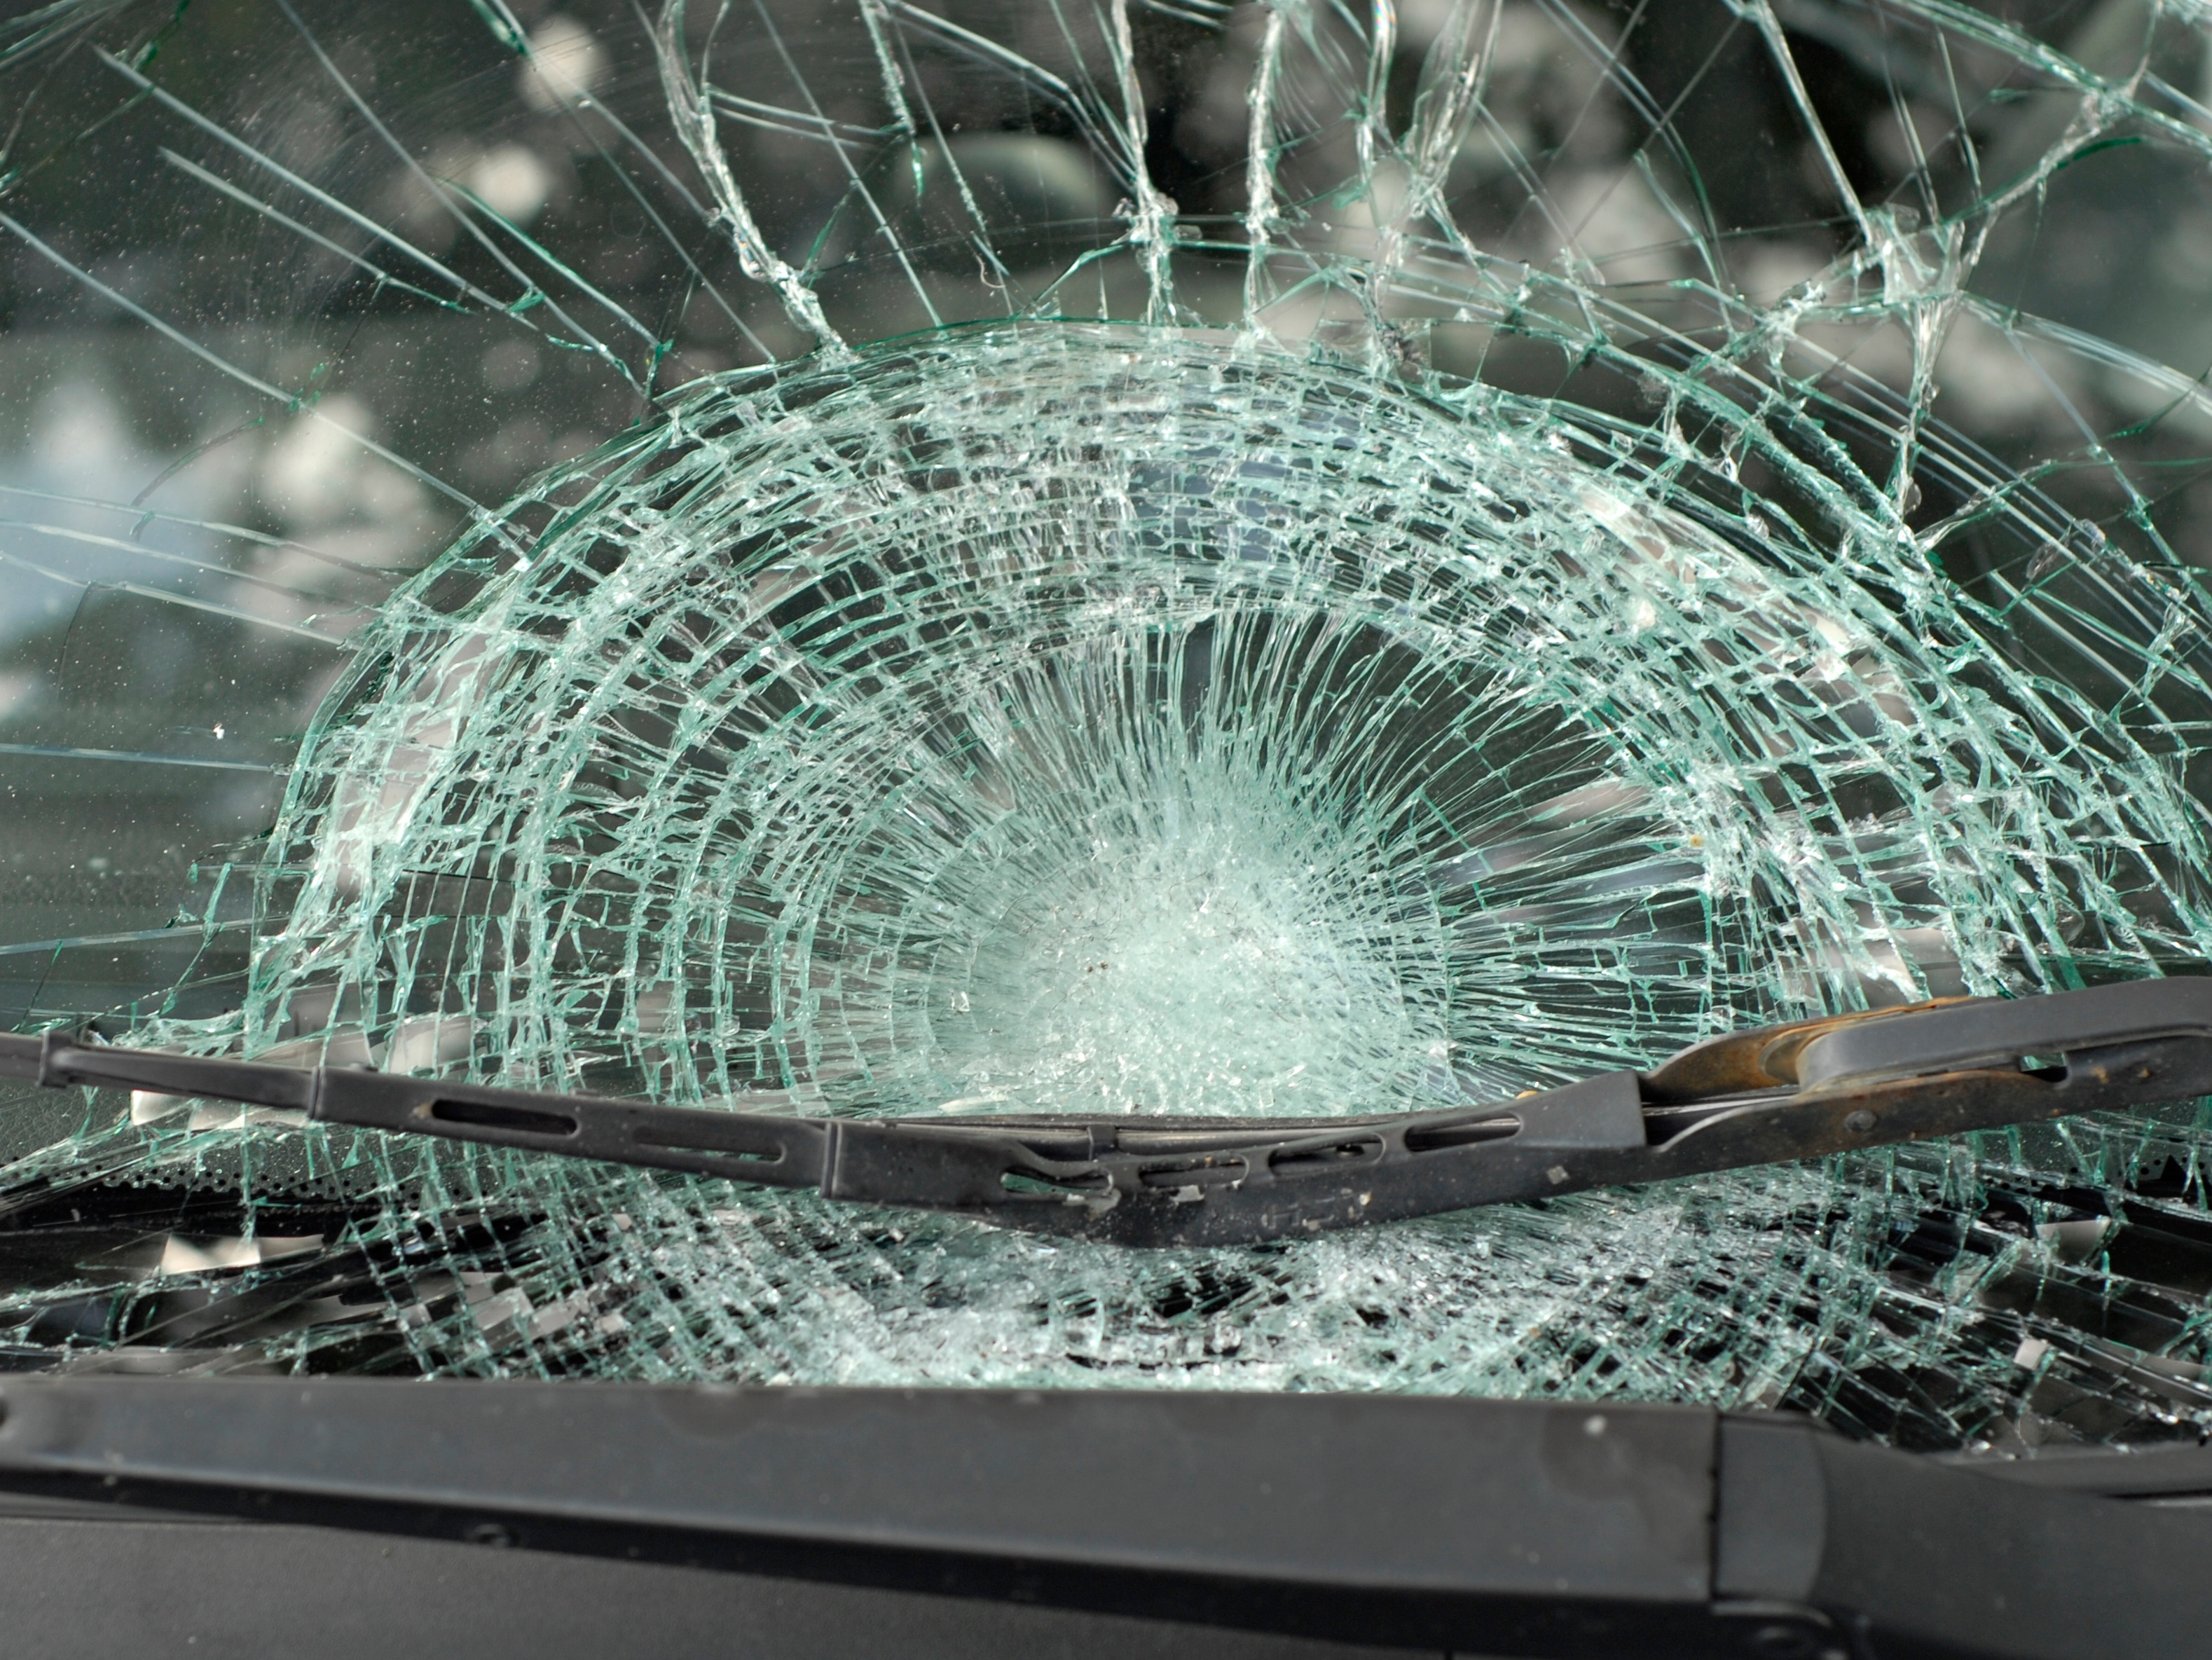 5 Things NOT to Do After a Car Accident